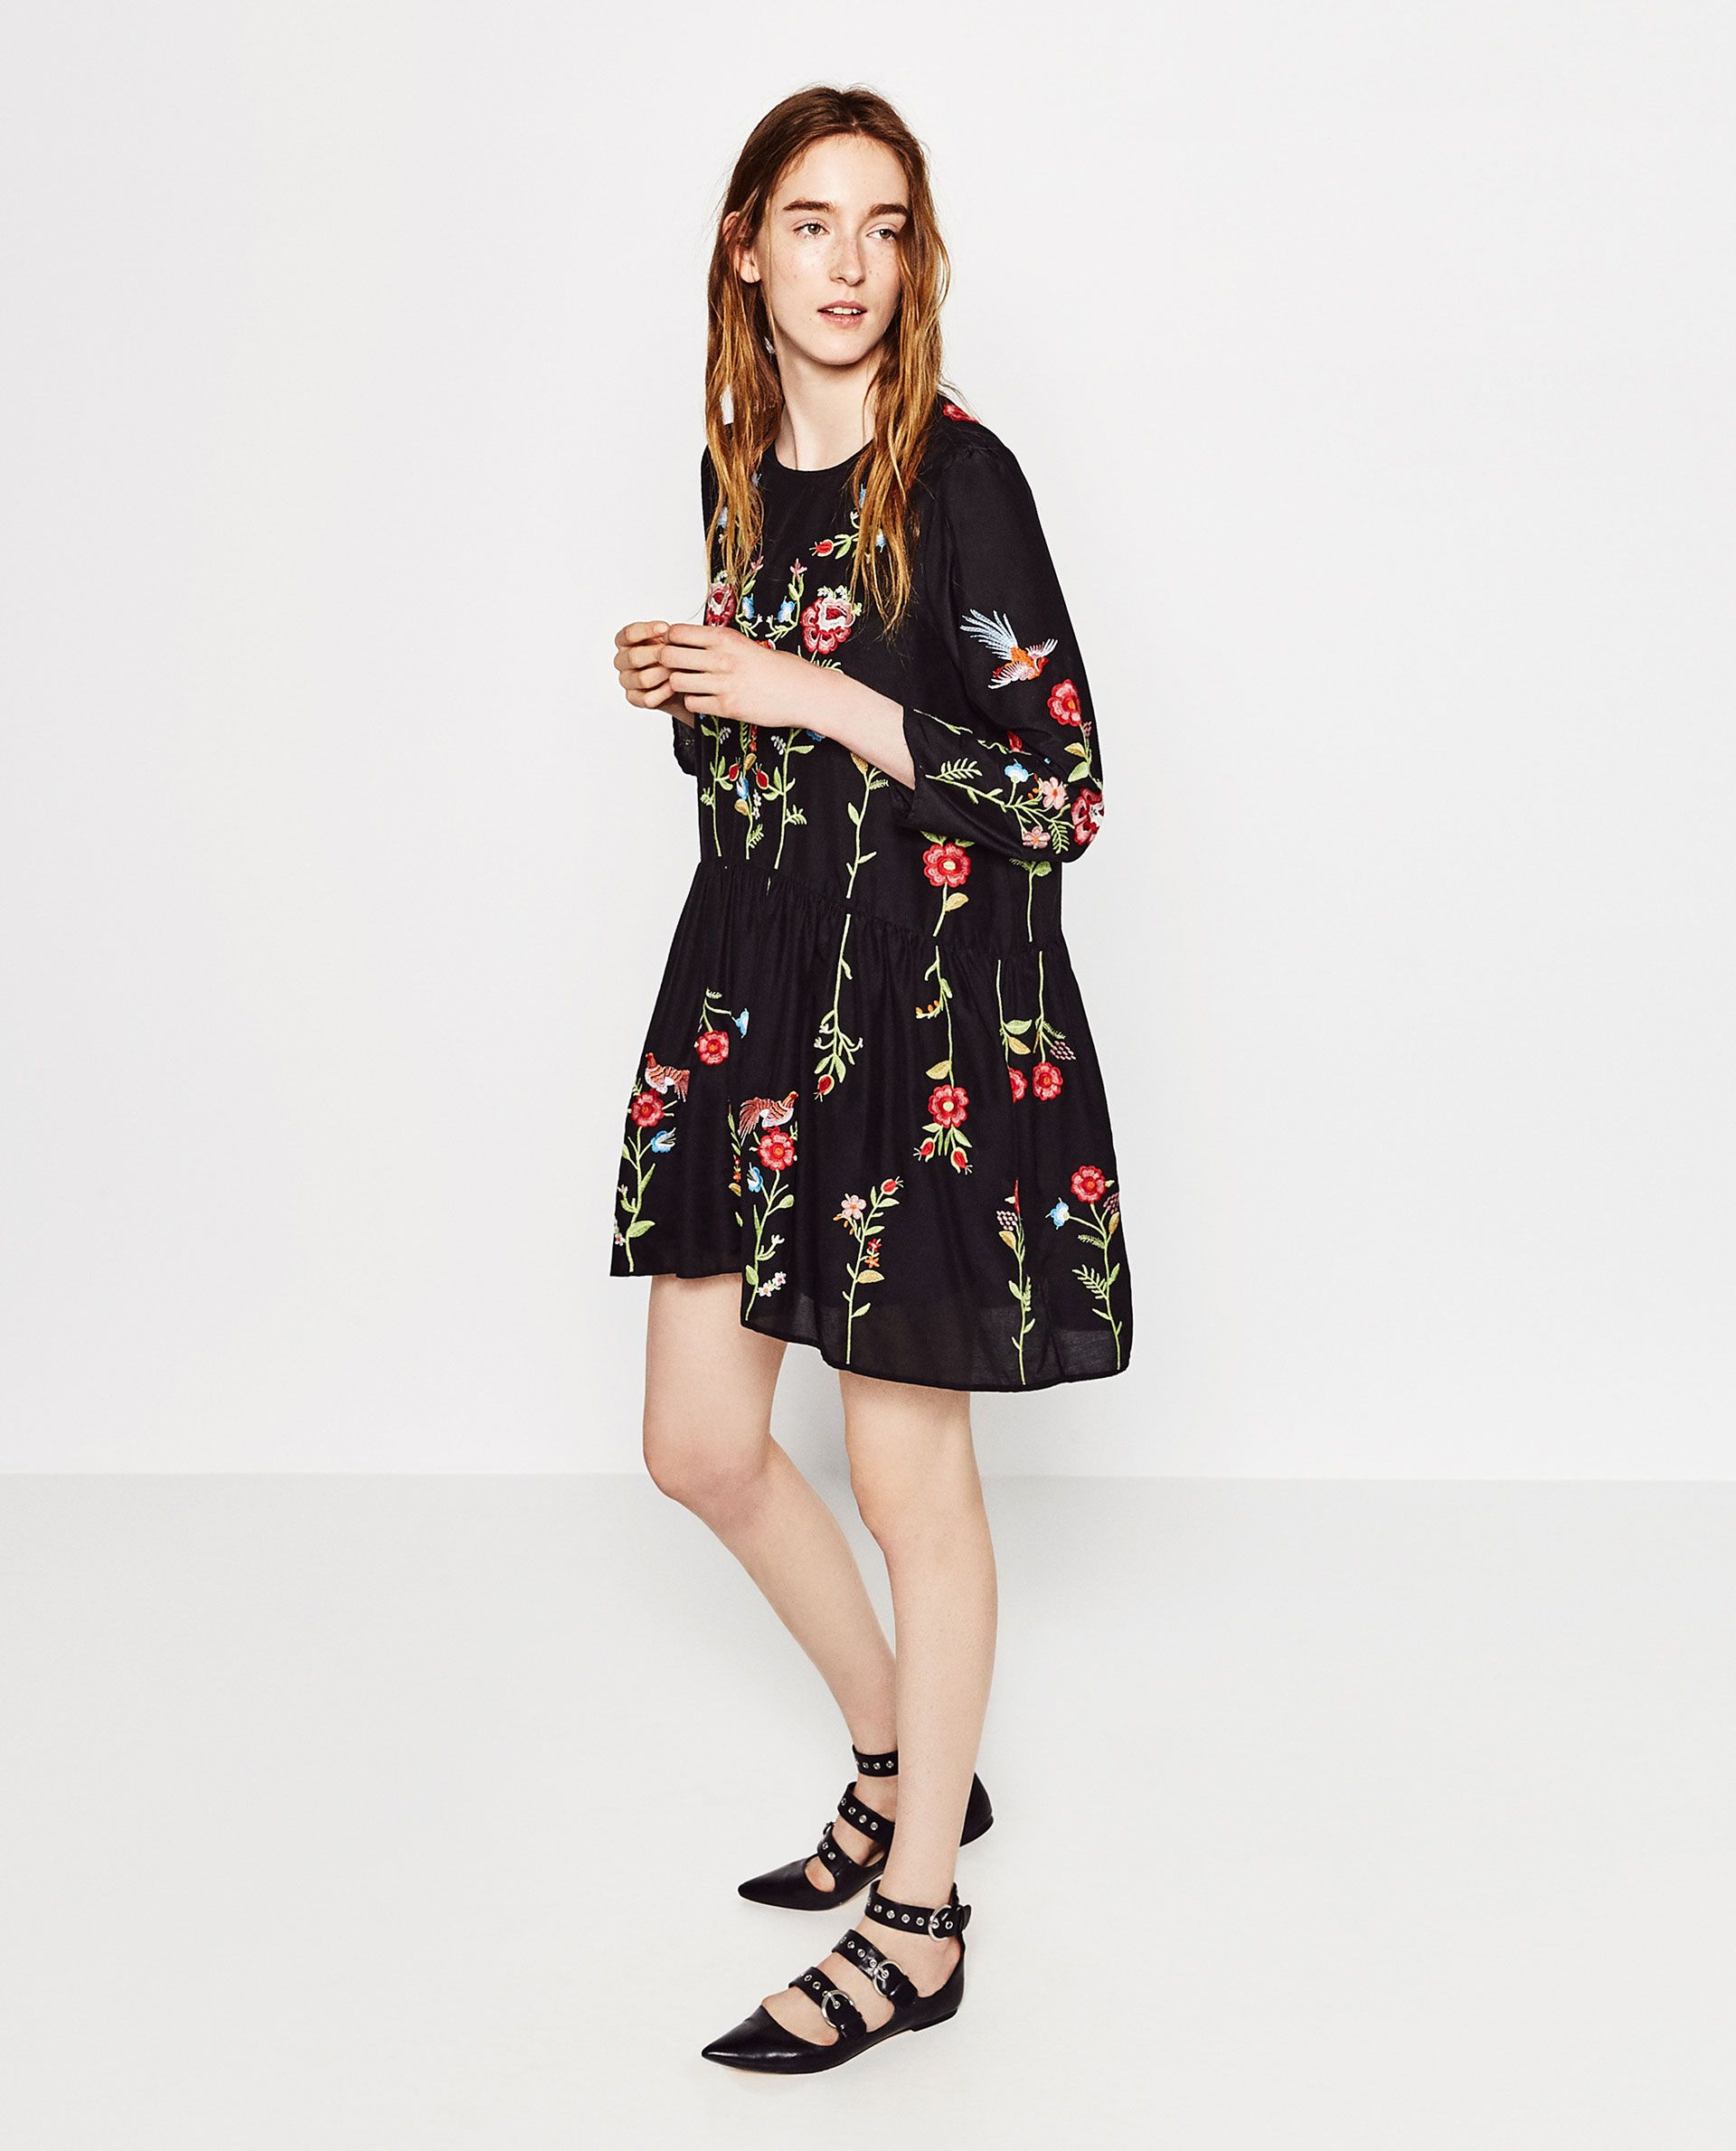 Zara Embroidered Dress | Two Looks